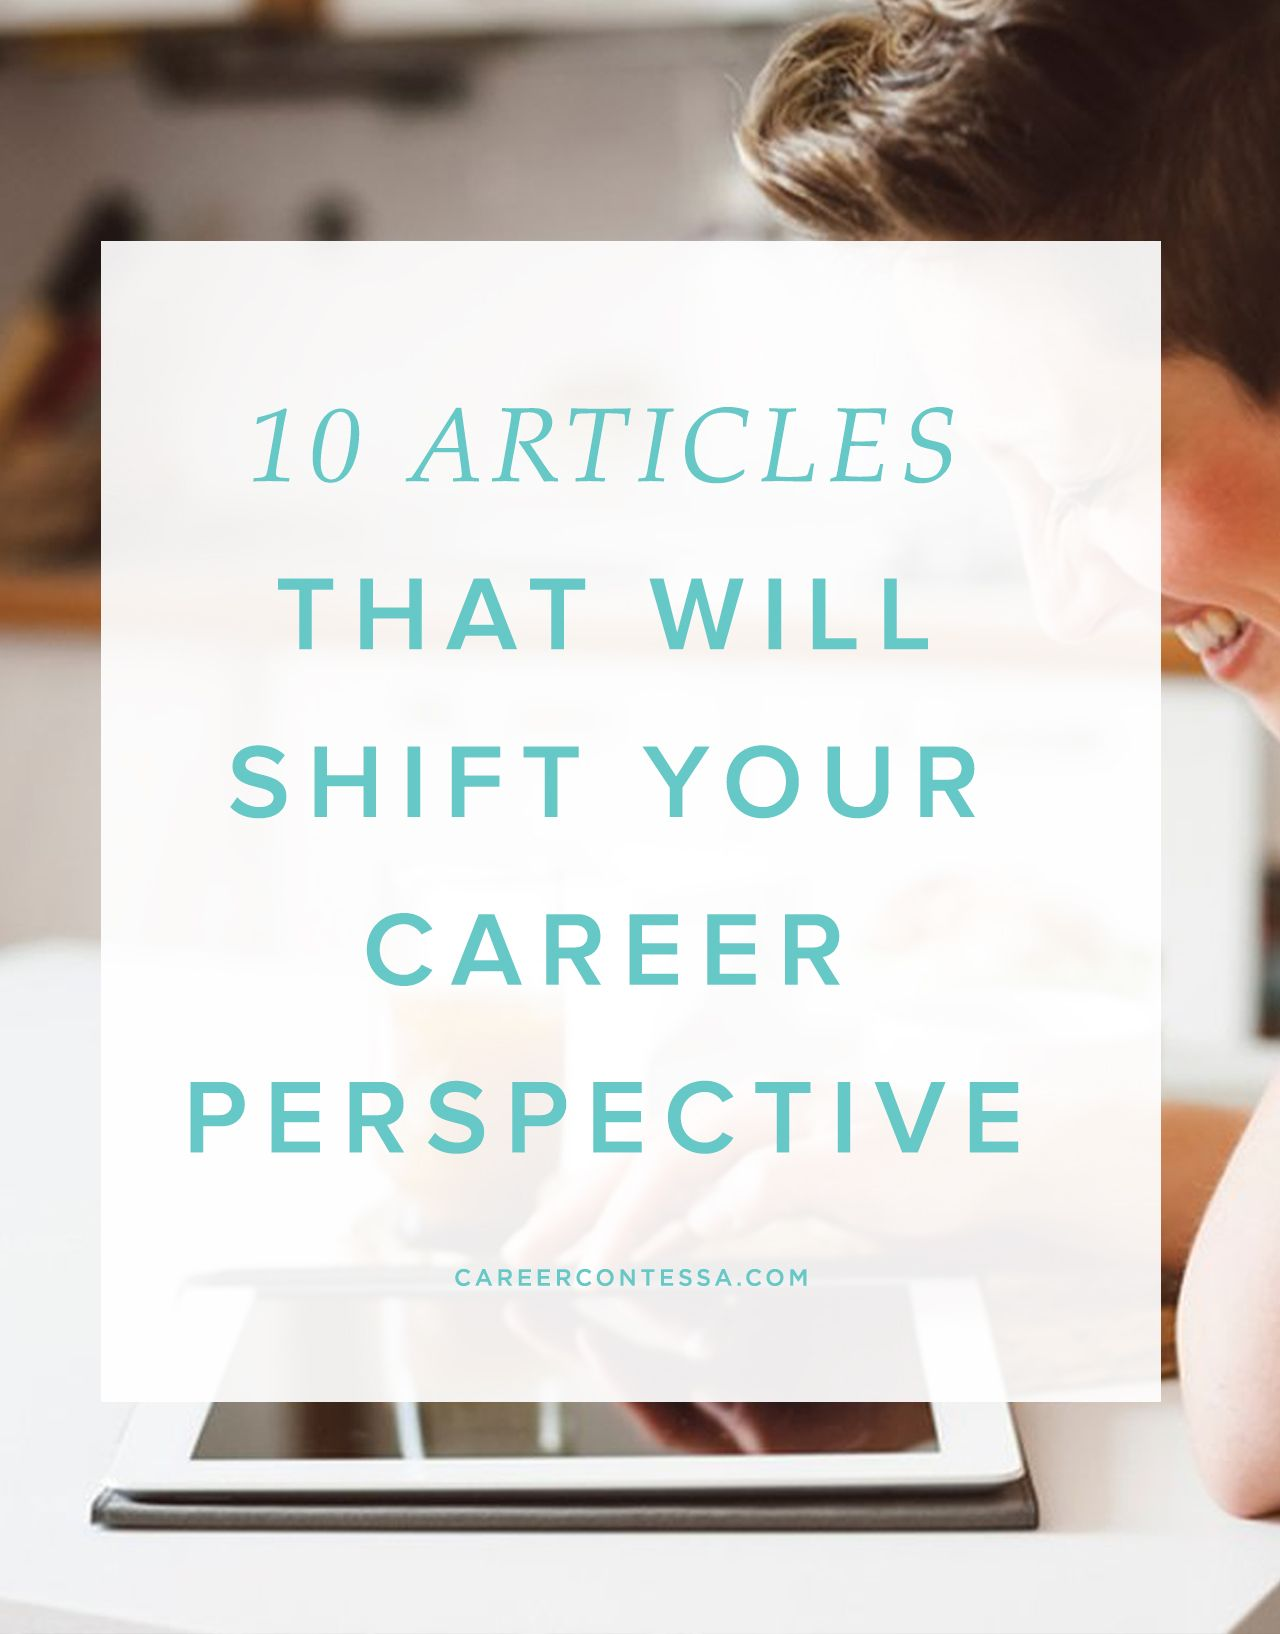 articles that will shift your career perspective 10 articles that will shift your career perspective careercontessa com